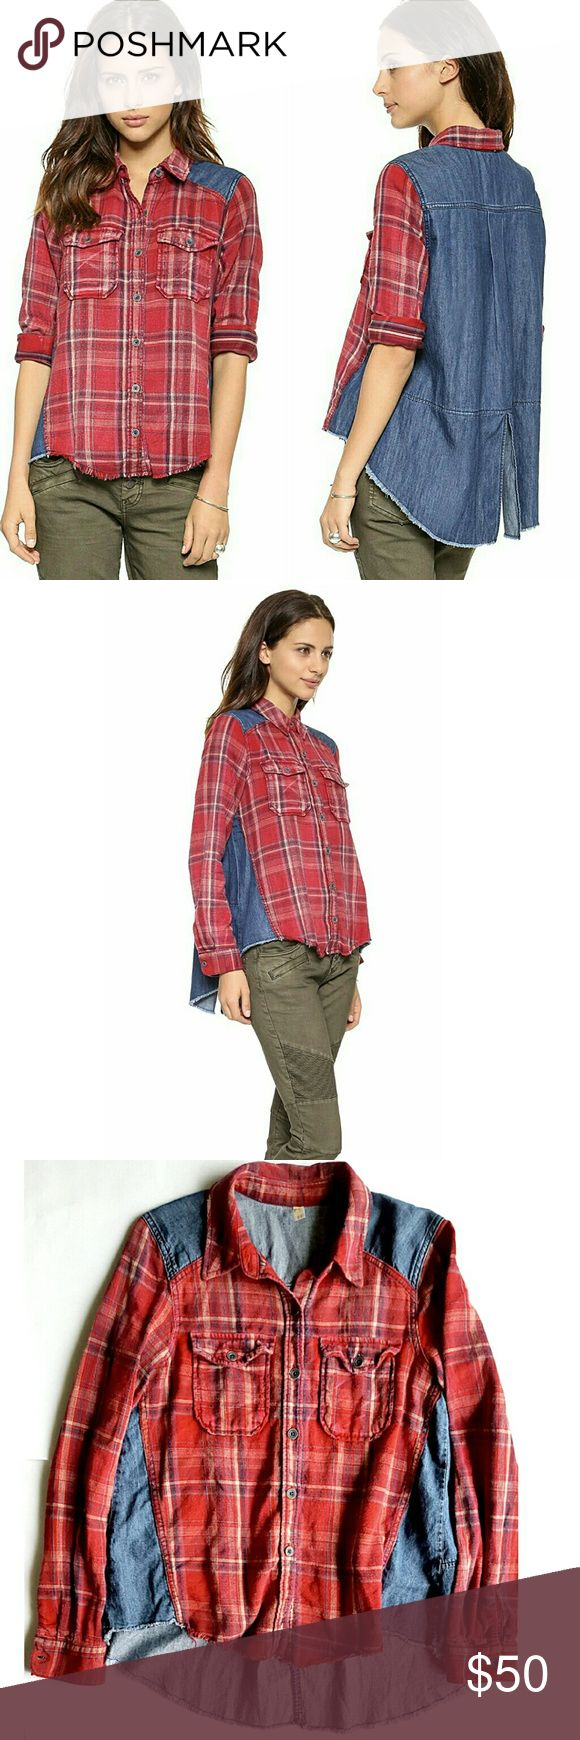 """Free People Road trip Gataway Button Down Shirt Yarn-dyed flannel with denim contrast detail on the shoulders and back panel defines a collared shirt further styled with front flap pockets and a raw-edge hemline. 16"""" shoulder to shoulder, 18.5"""" pit to pit, sleeves are 24"""" long.  In excellent LIKE NEW condition. Free People Tops Button Down Shirts"""